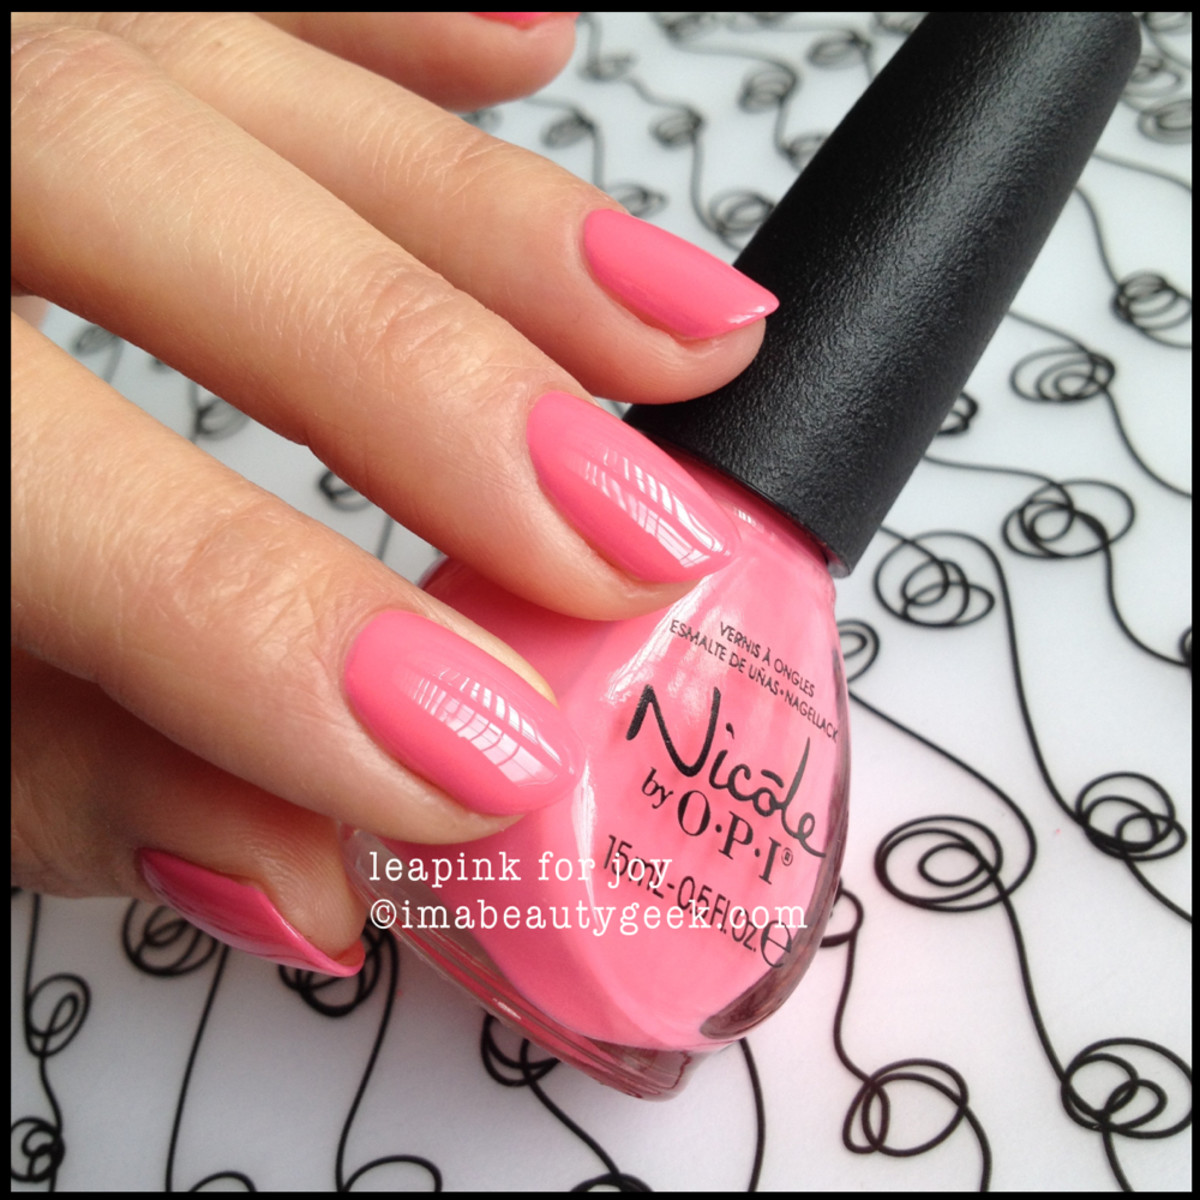 Nicole by OPI Summer 2014_Nicole by OPI Leapink for Joy Summer 2014